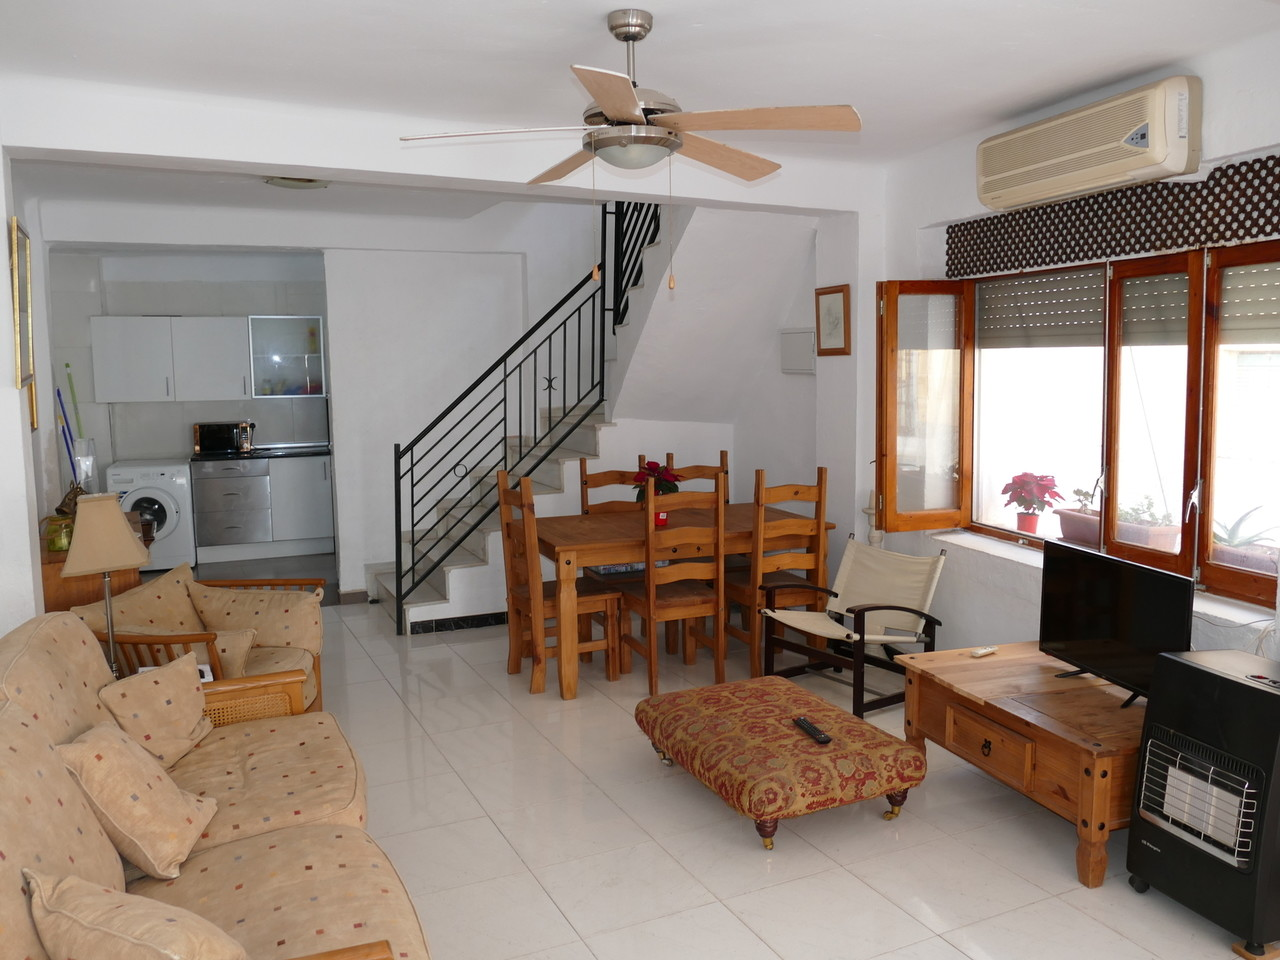 Upstairs area of the townhouse